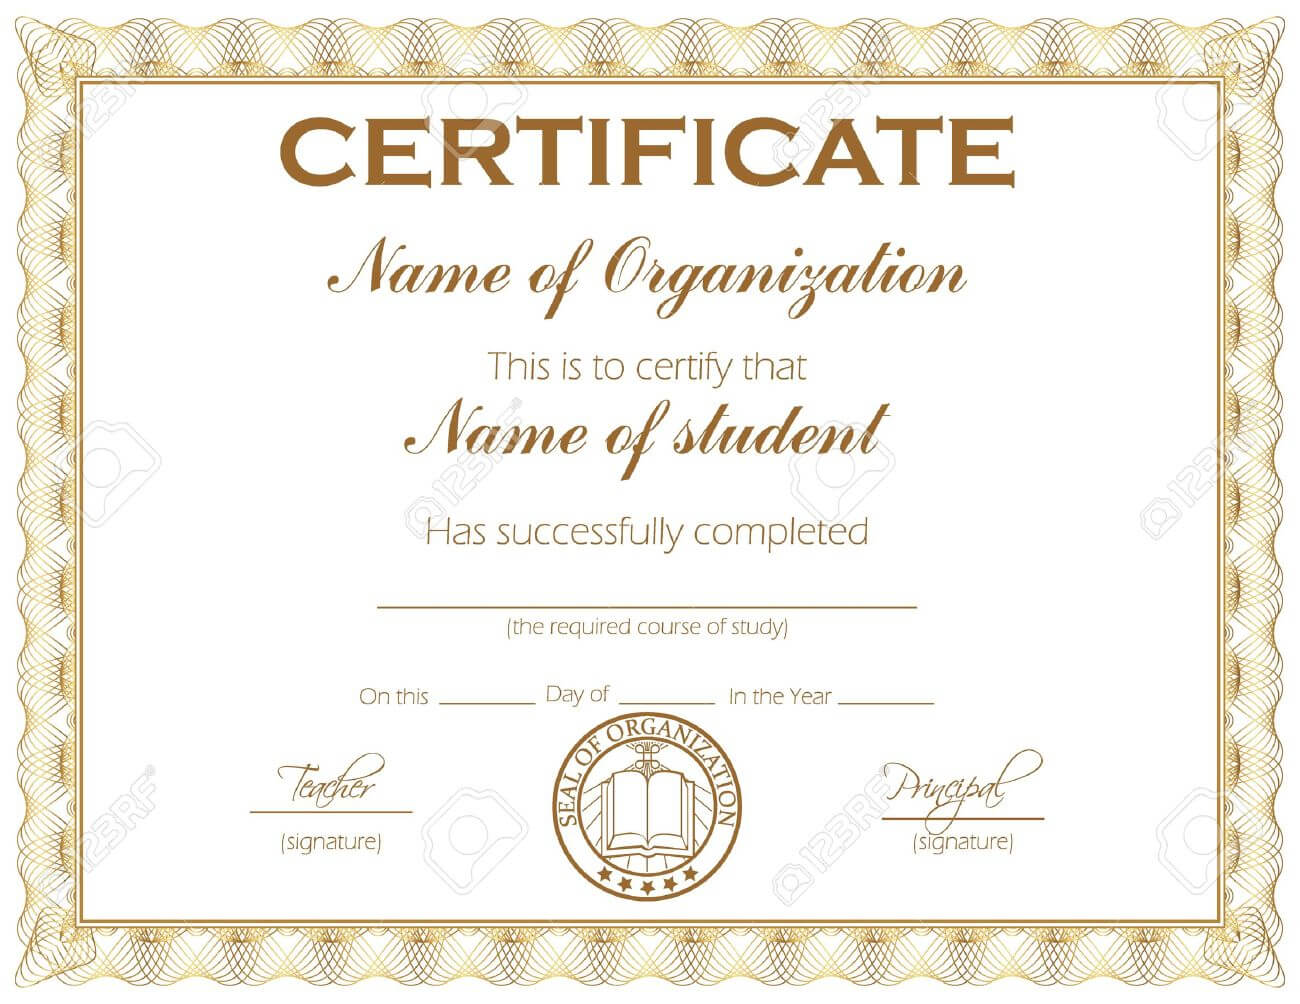 General Purpose Certificate Or Award With Sample Text That Can.. With Template For Certificate Of Award